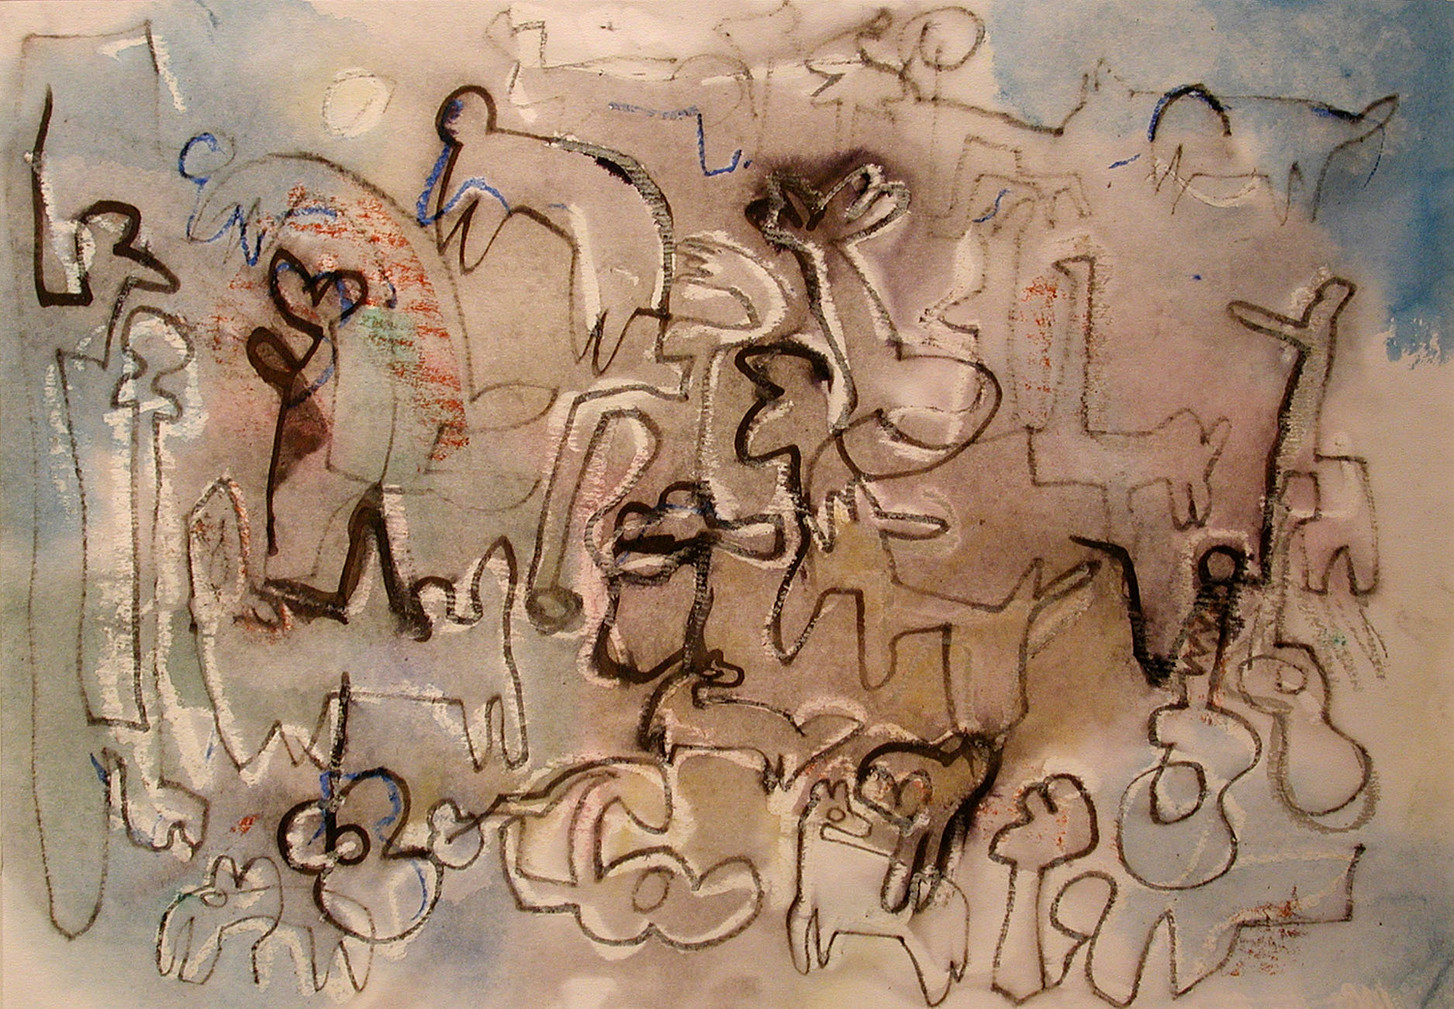 05_Guitar People, 2001, Aquarell u. Tint